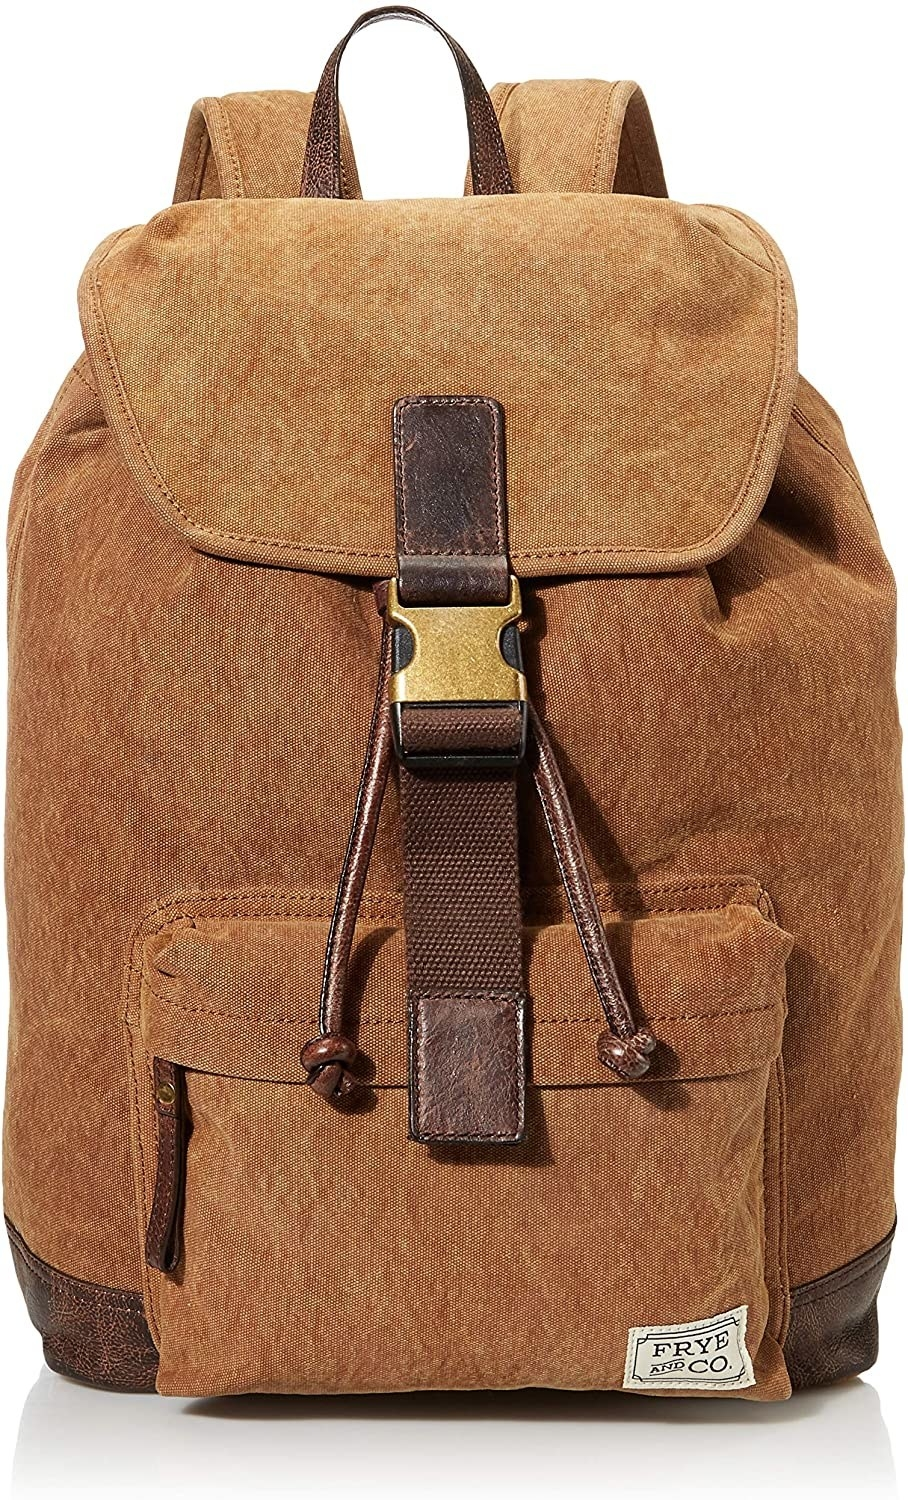 The tan backpack with a front zipped pouch, drawstring close, and buckle closure in dark brown